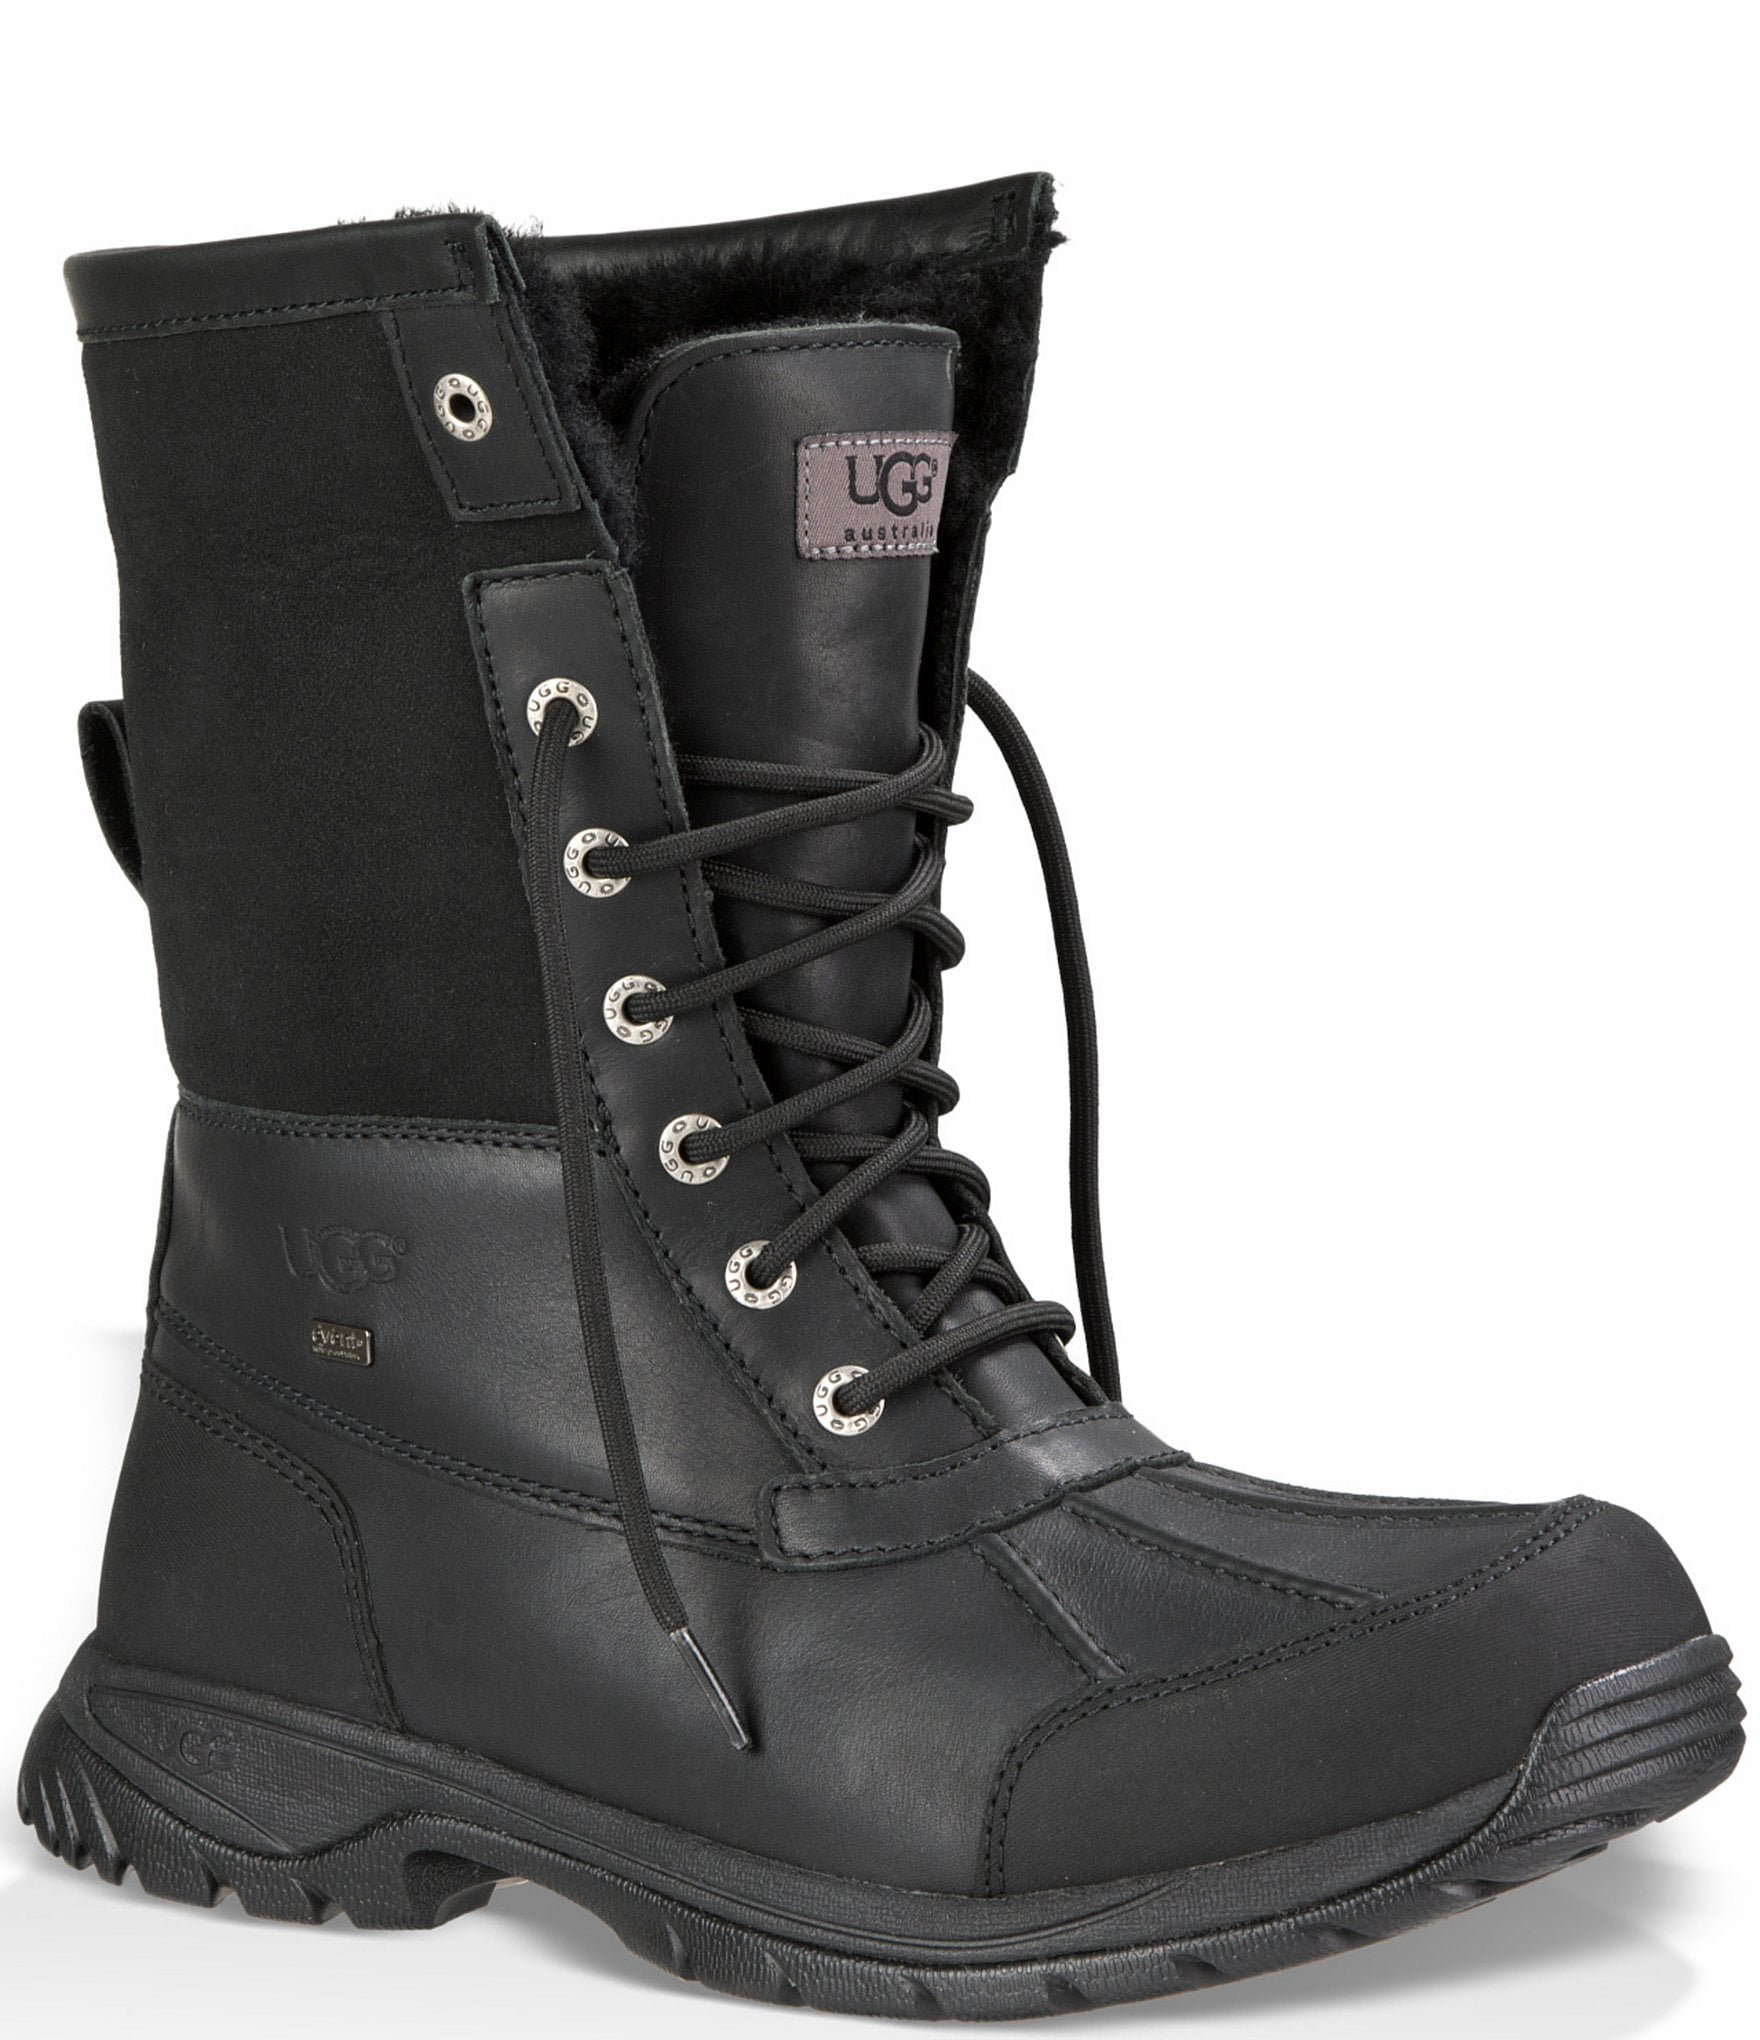 Ugg Australia All Weather Boots Division Of Global Affairs